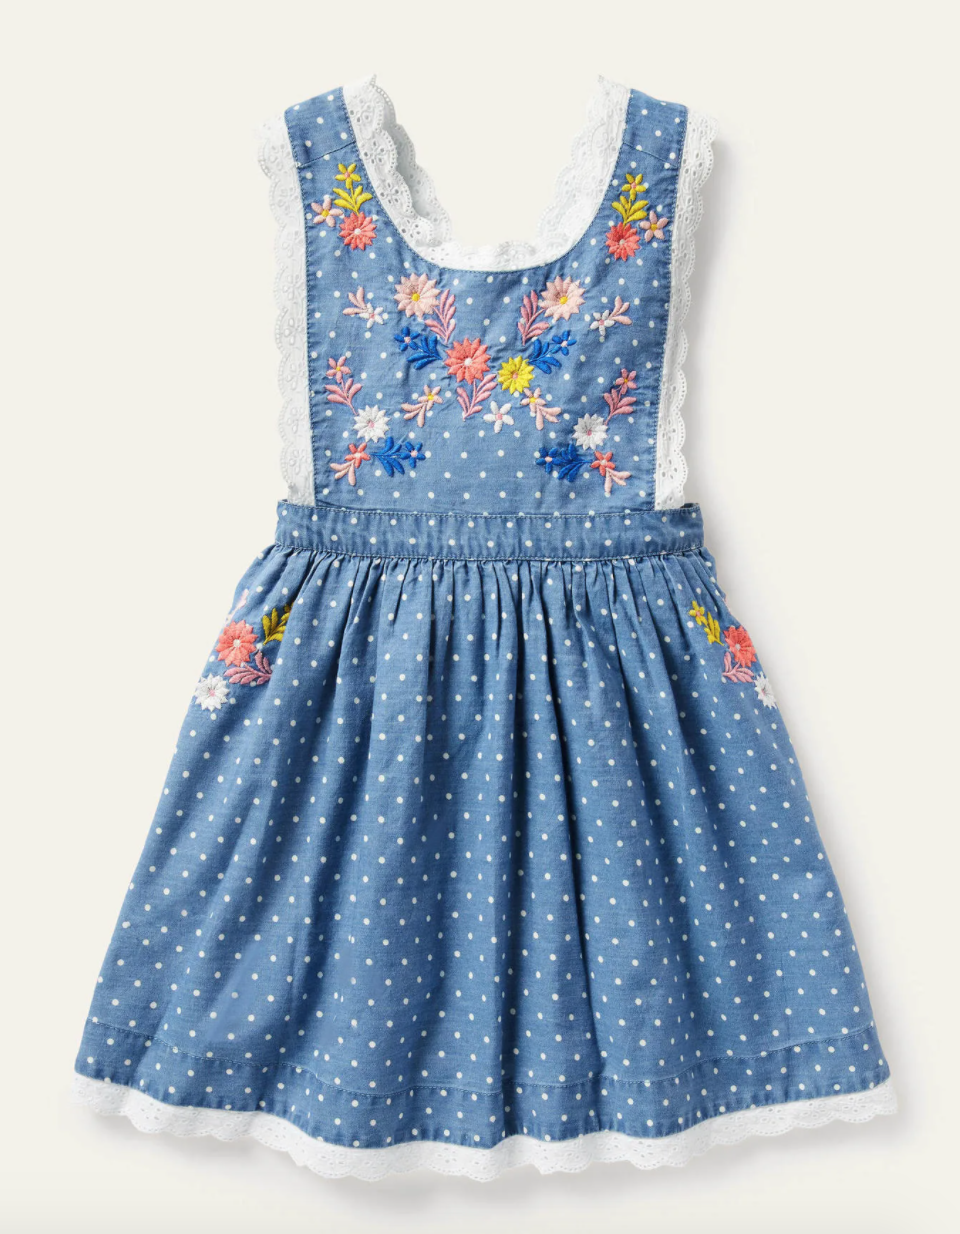 Blue swiss dot dress with colorful embroidered flowers